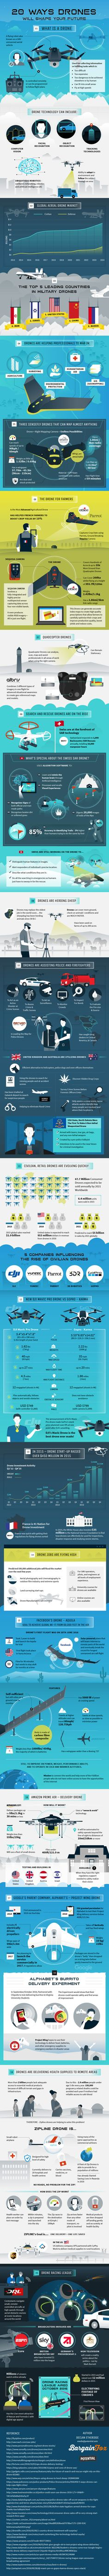 20 Ways Drones will Shape your Future #Infographic #Drones #Technology